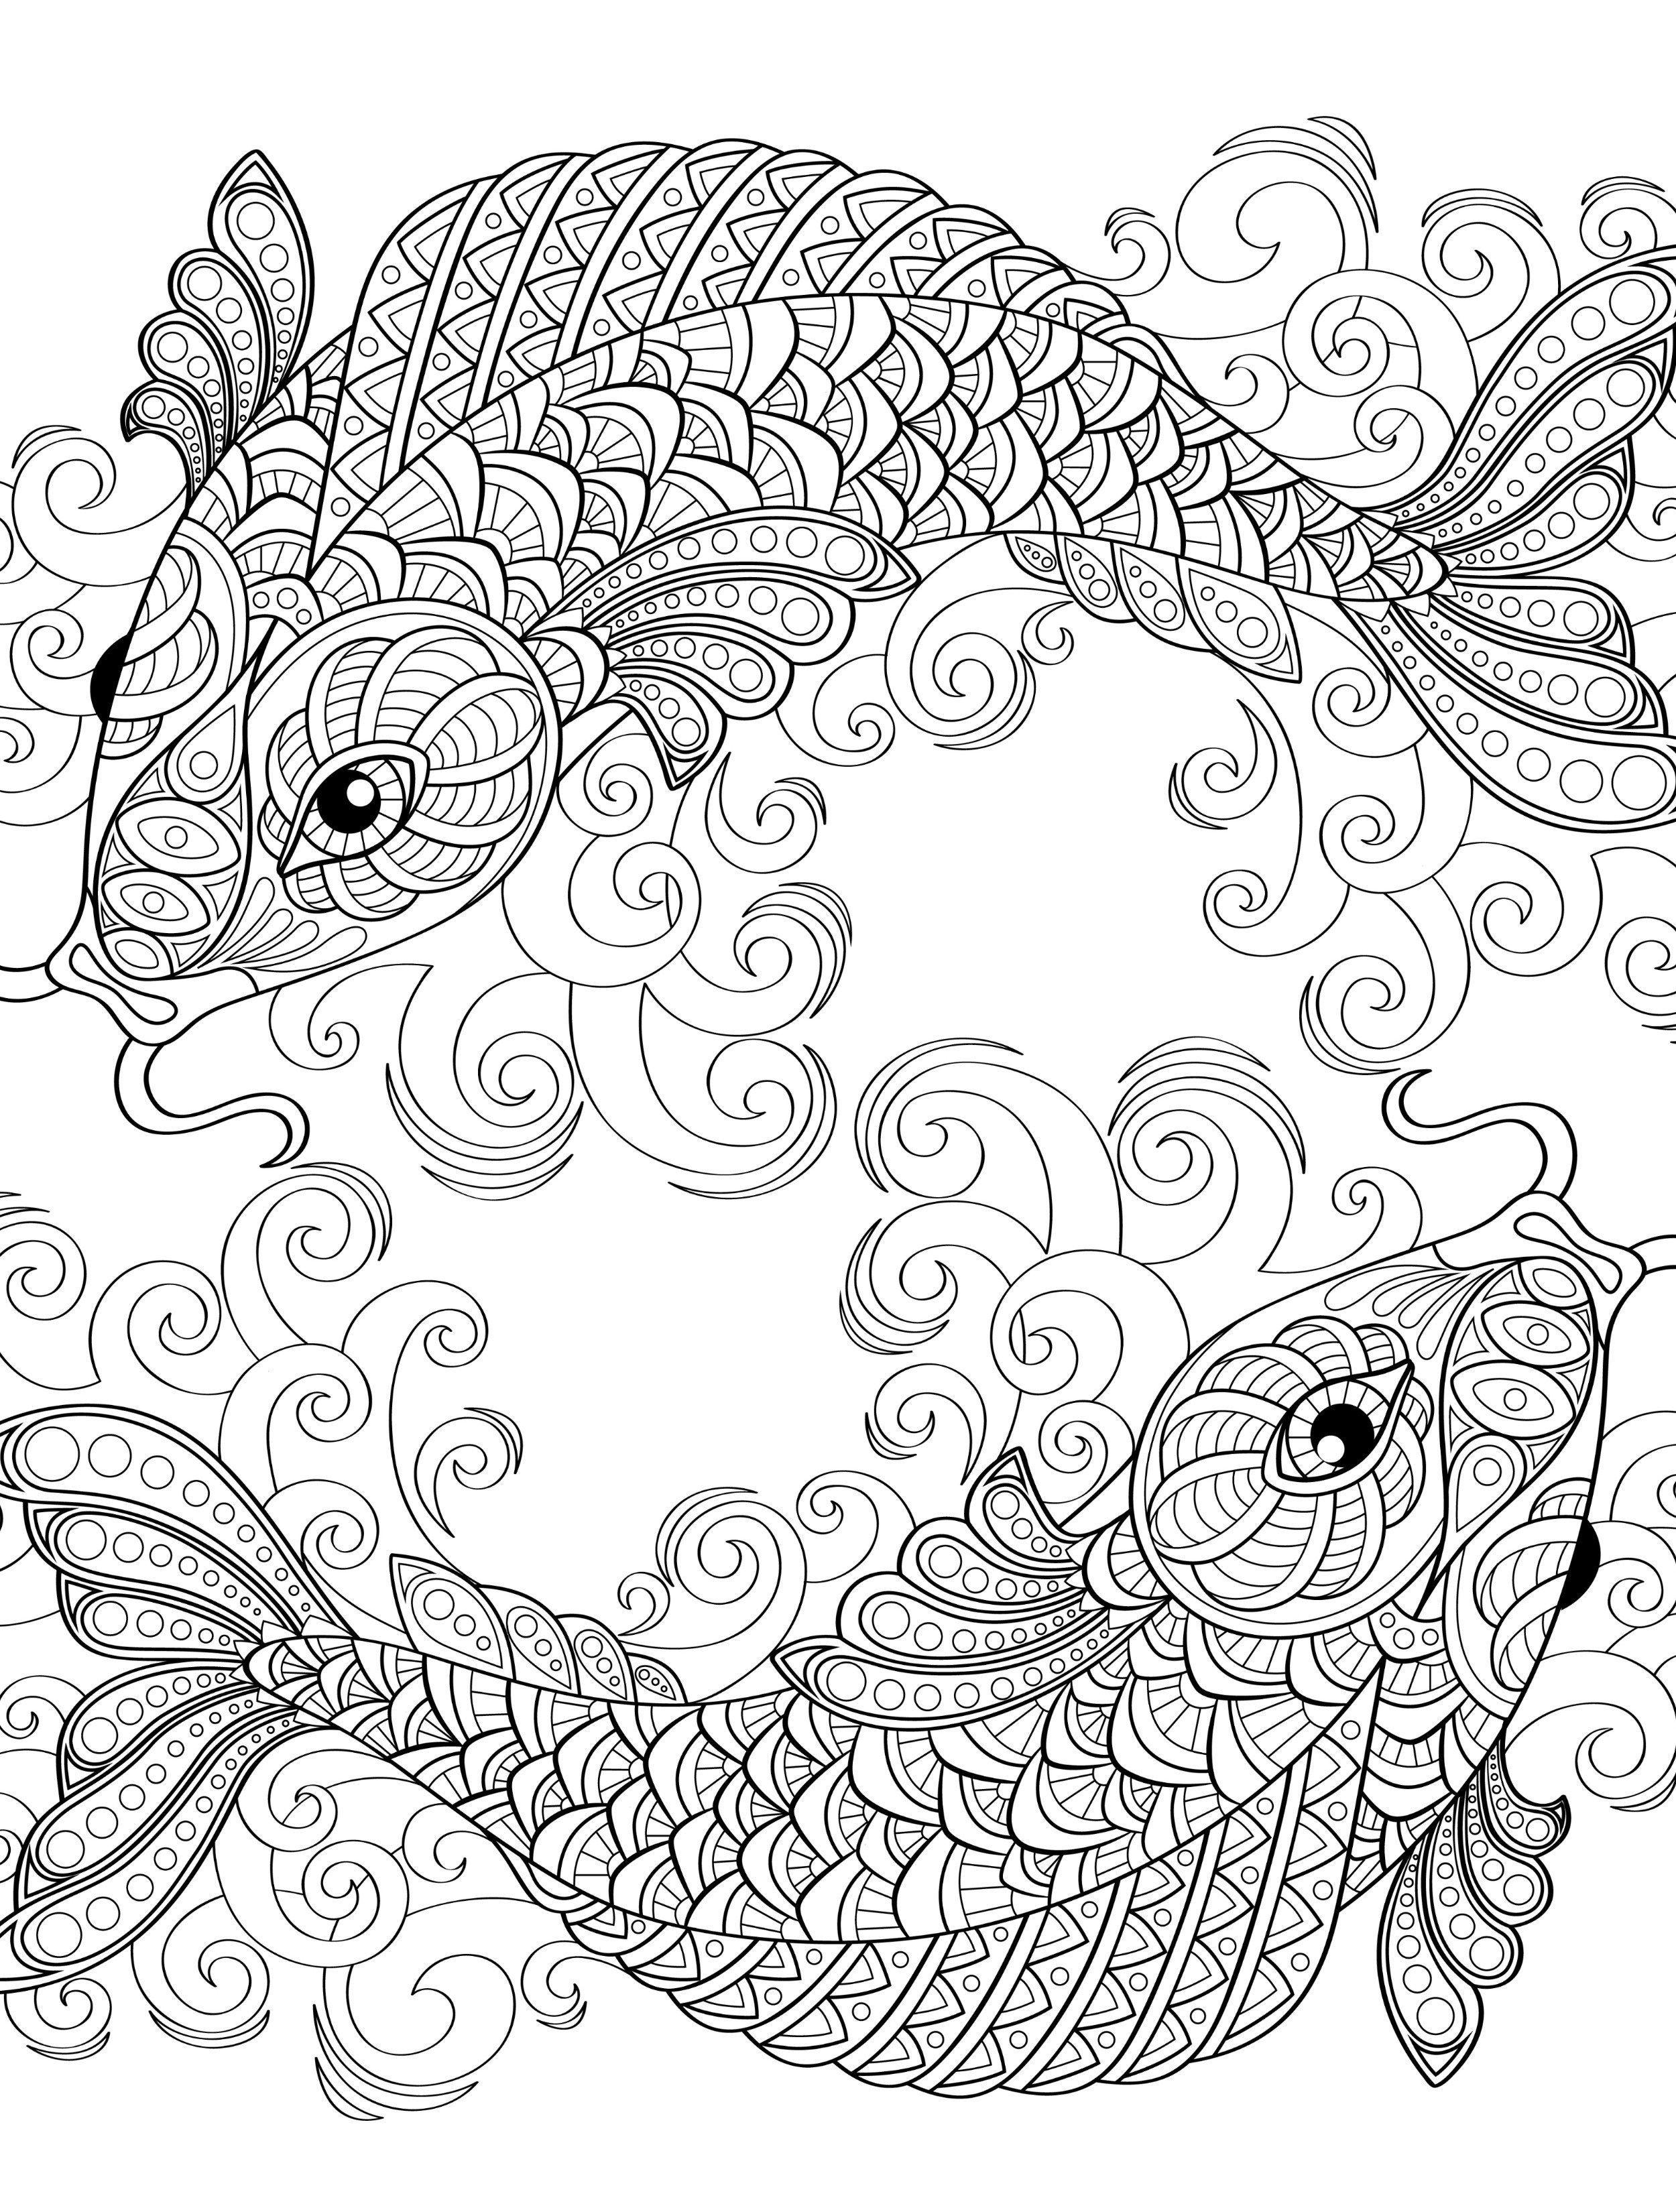 yin and yang pieces symbol fish coloring page for adults | Coloring ...